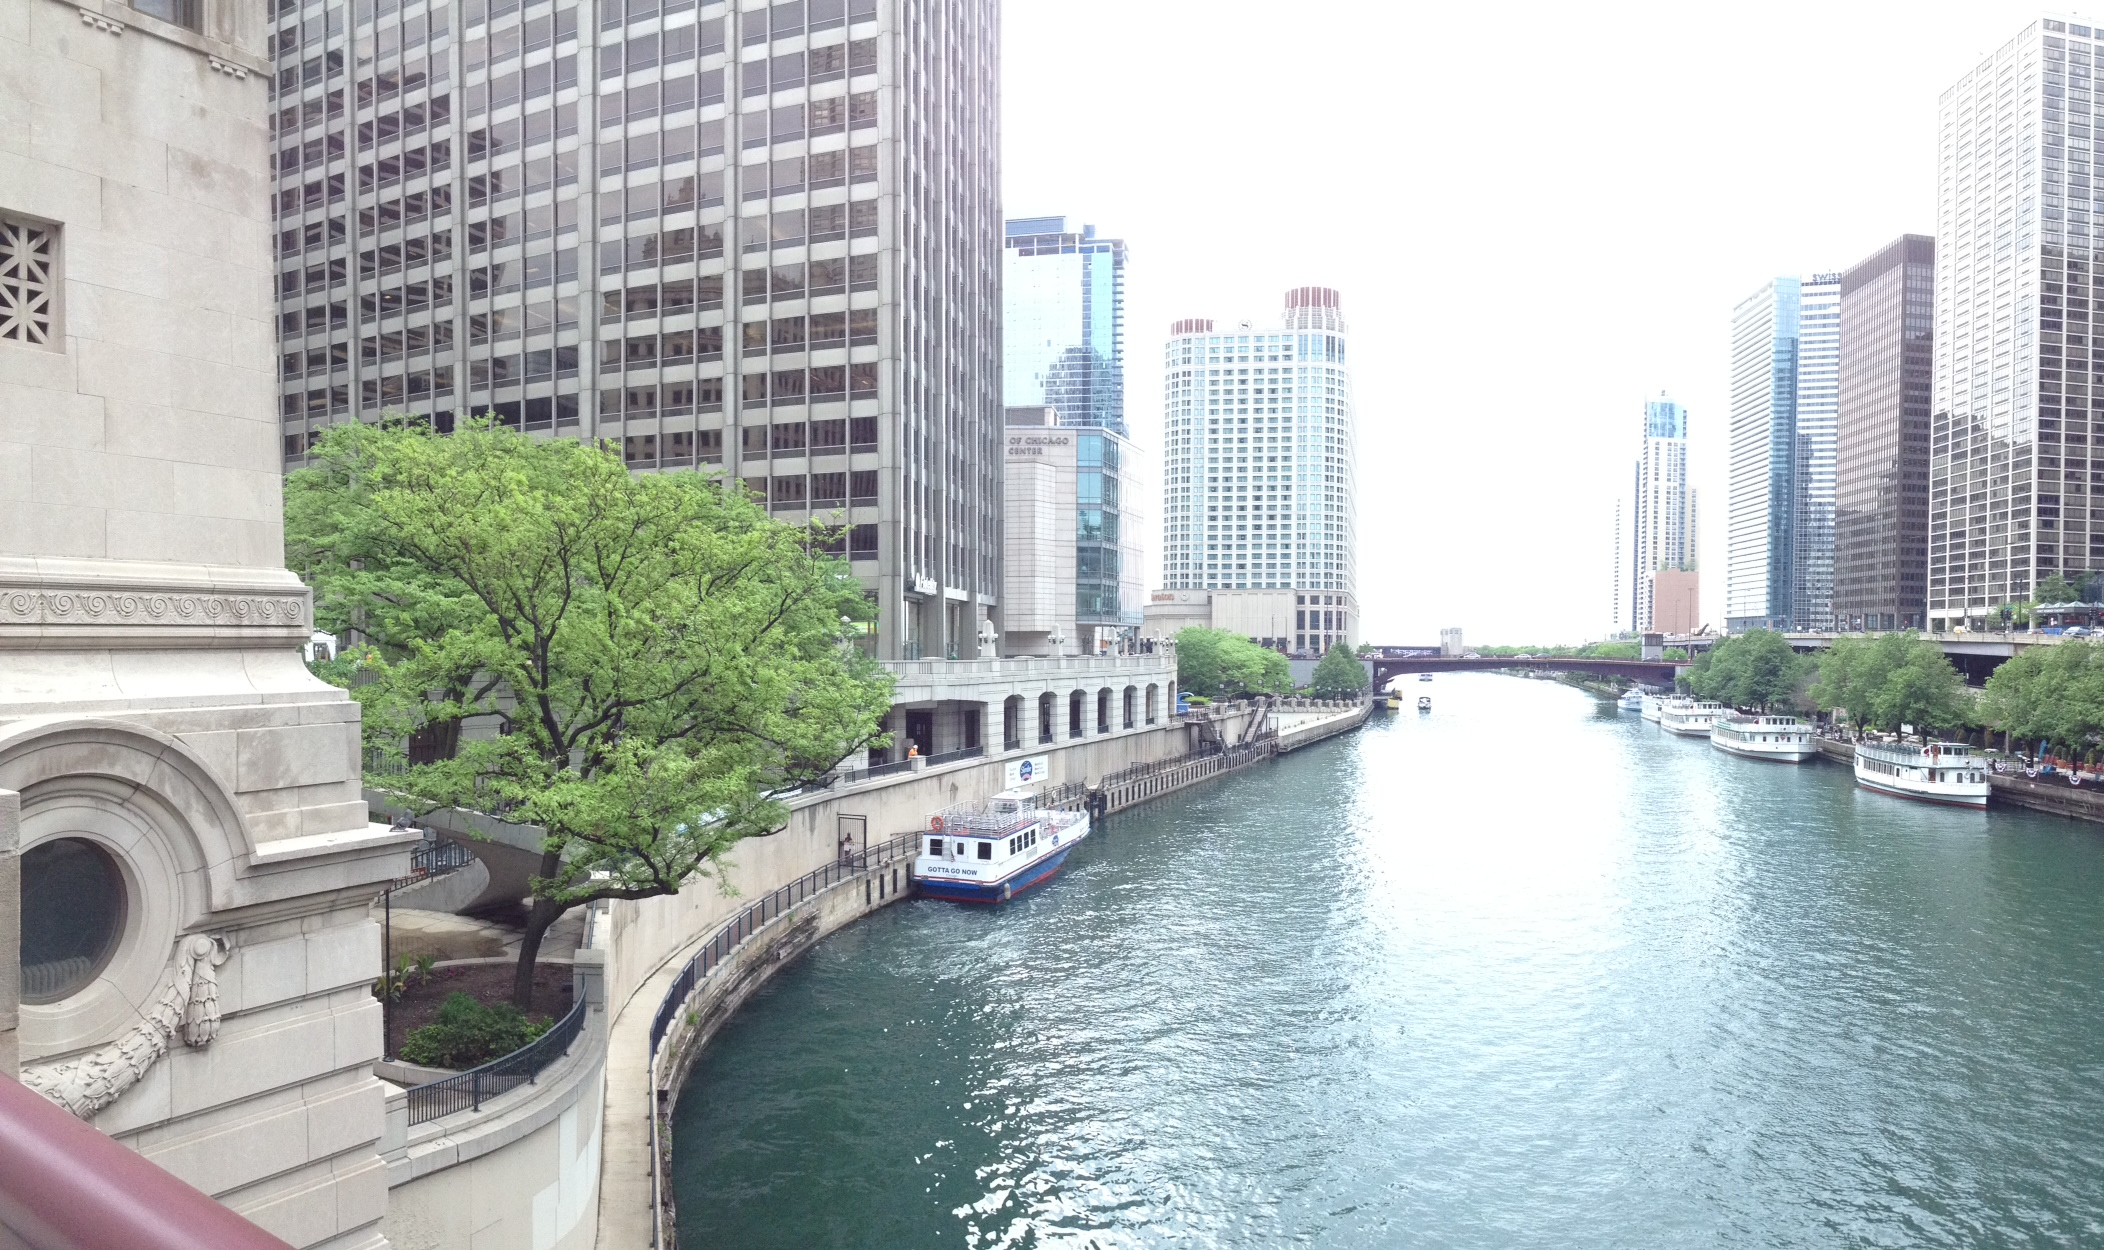 A view of the southern edge of Streeterville today. (Credit: Heather Sadusky)